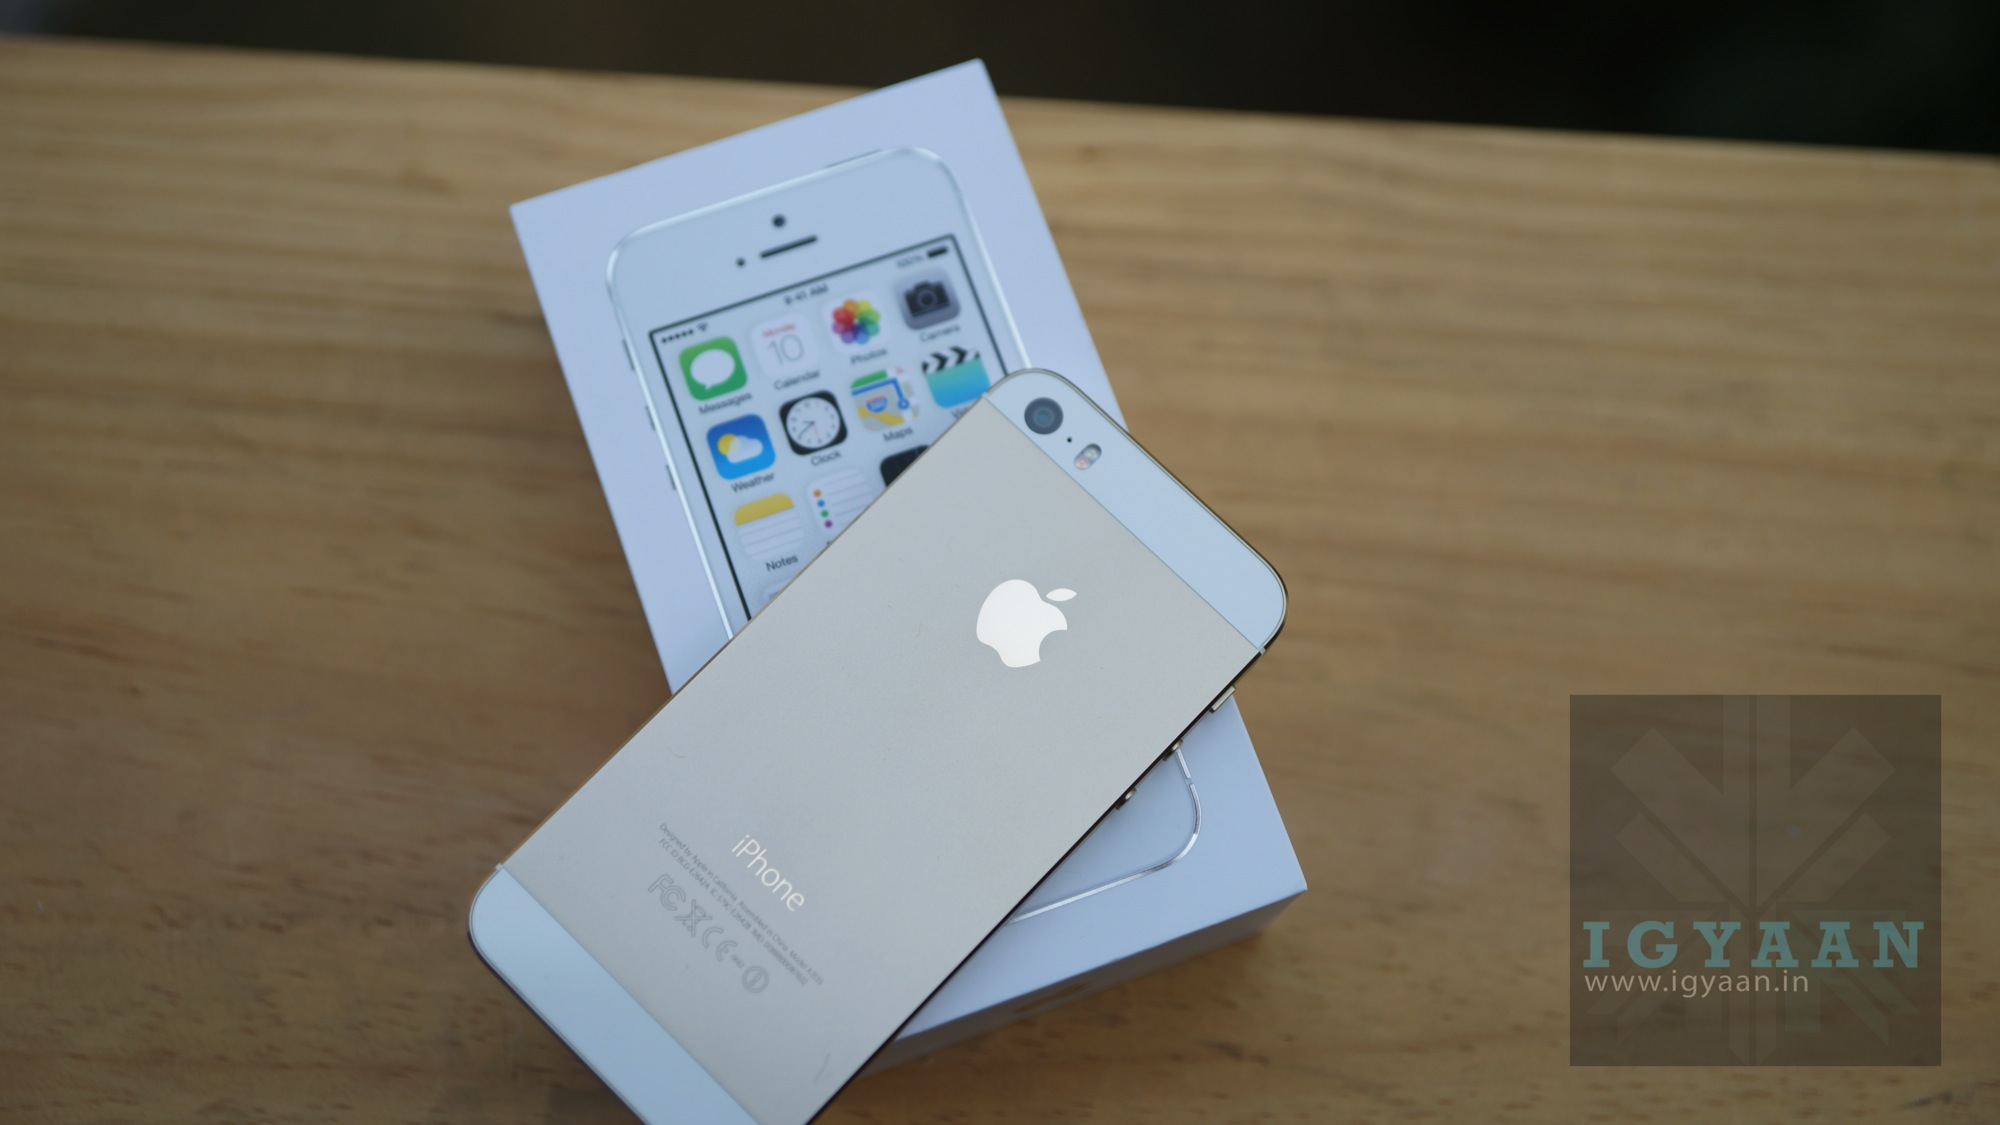 Apple iPhone 5s Unboxing and First Look | iGyaan Network